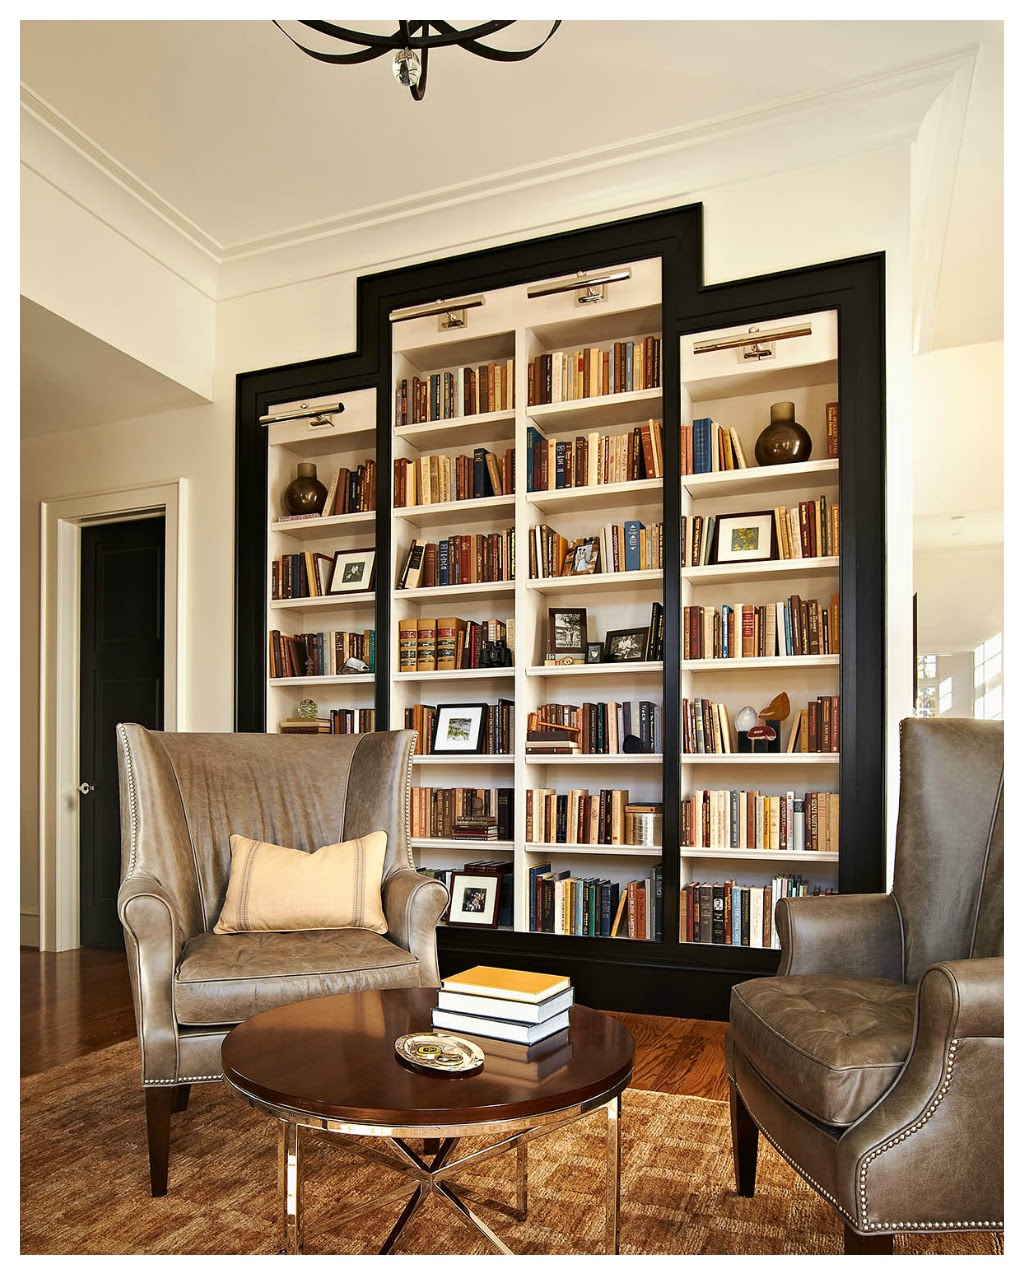 Bookshelves Study At Ncstate Chancellors House Design Lines Ltd